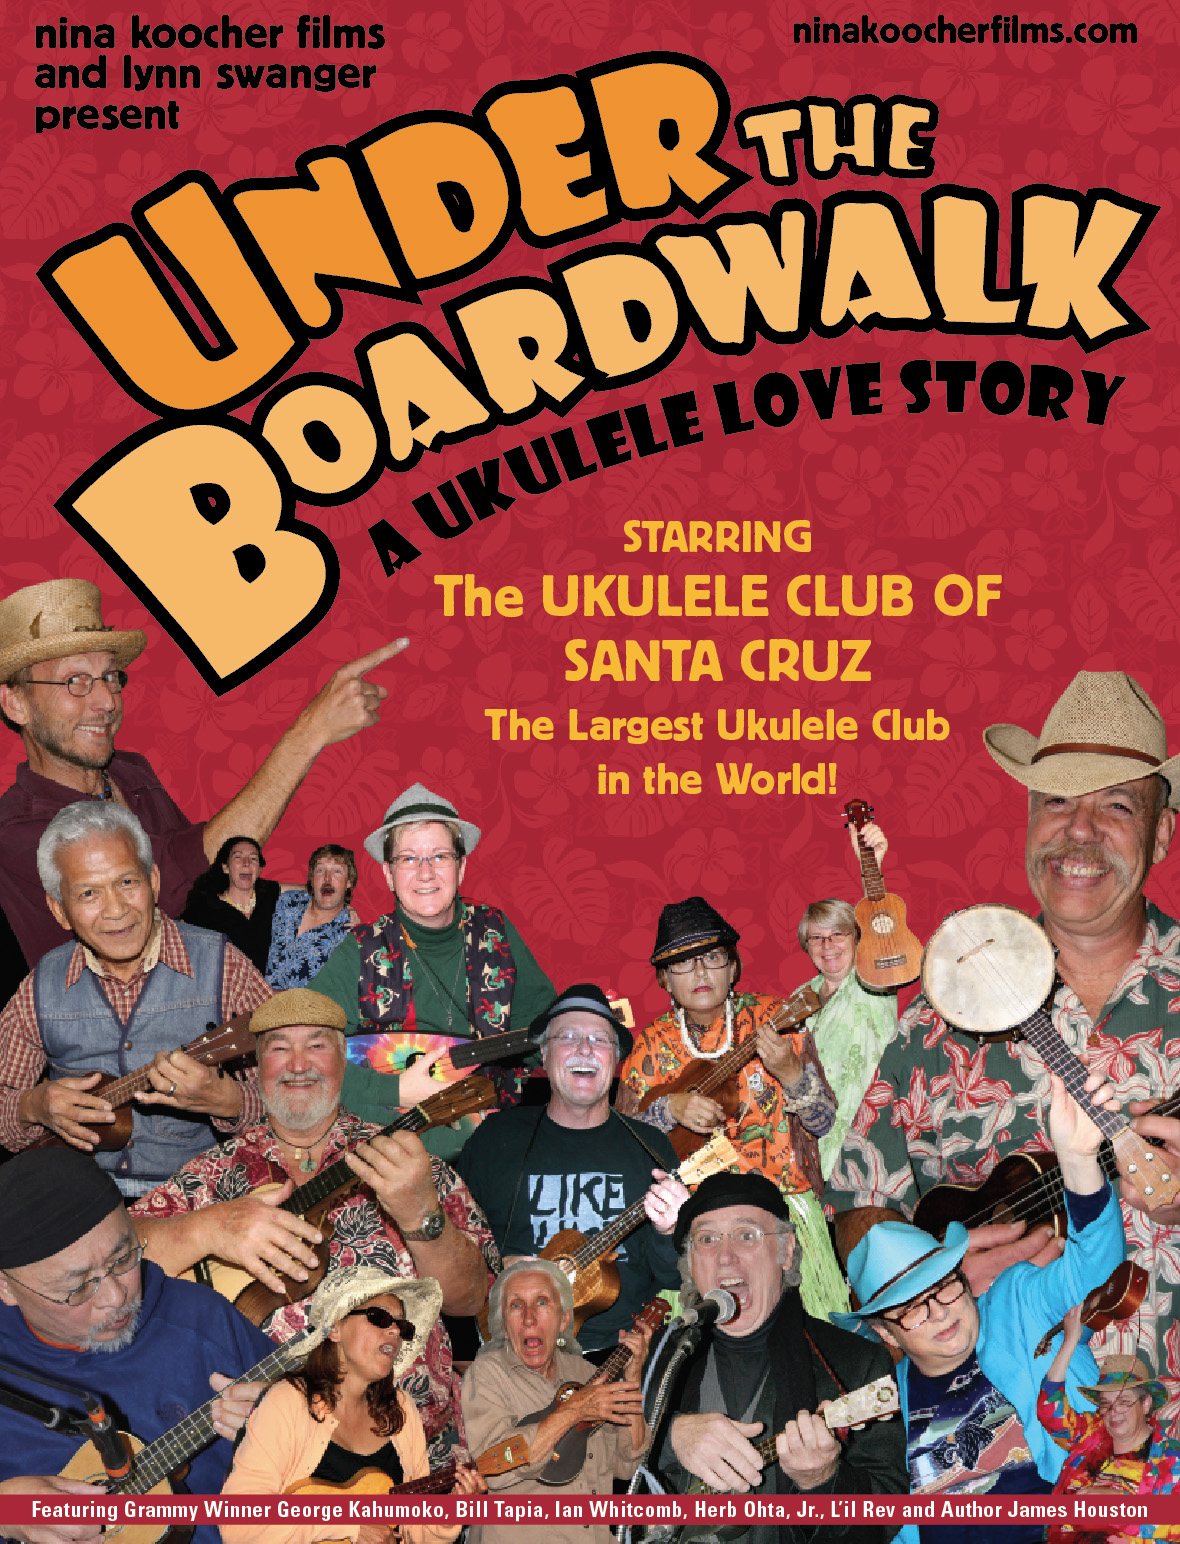 Under the Boardwalk: A Ukulele Love Story